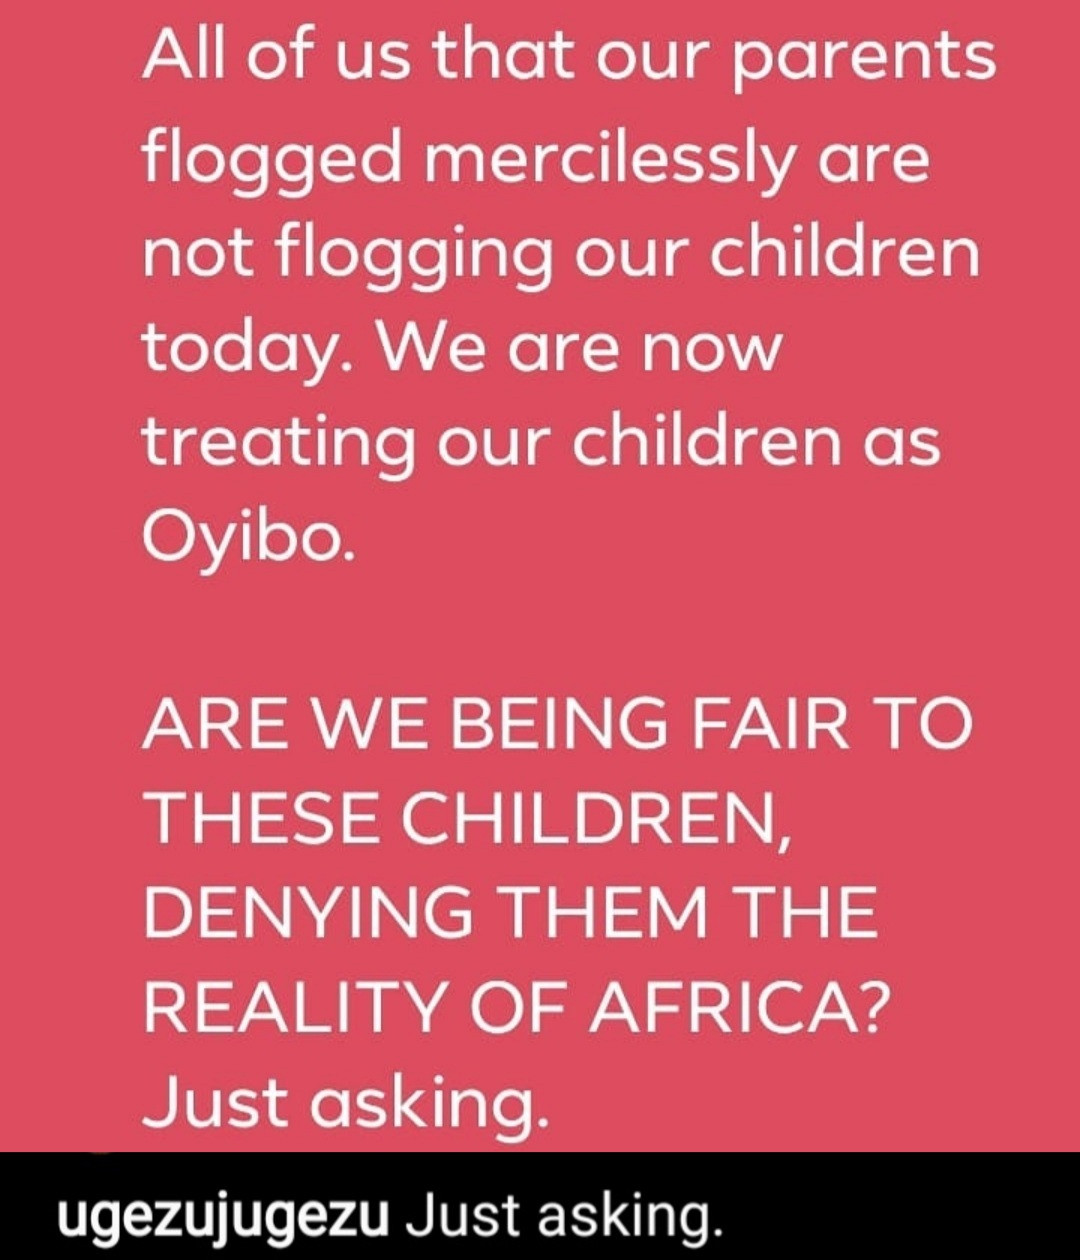 """""""Are we being fair to these children"""" Actor Ugezu condemns parents who were flogged as kids but won"""